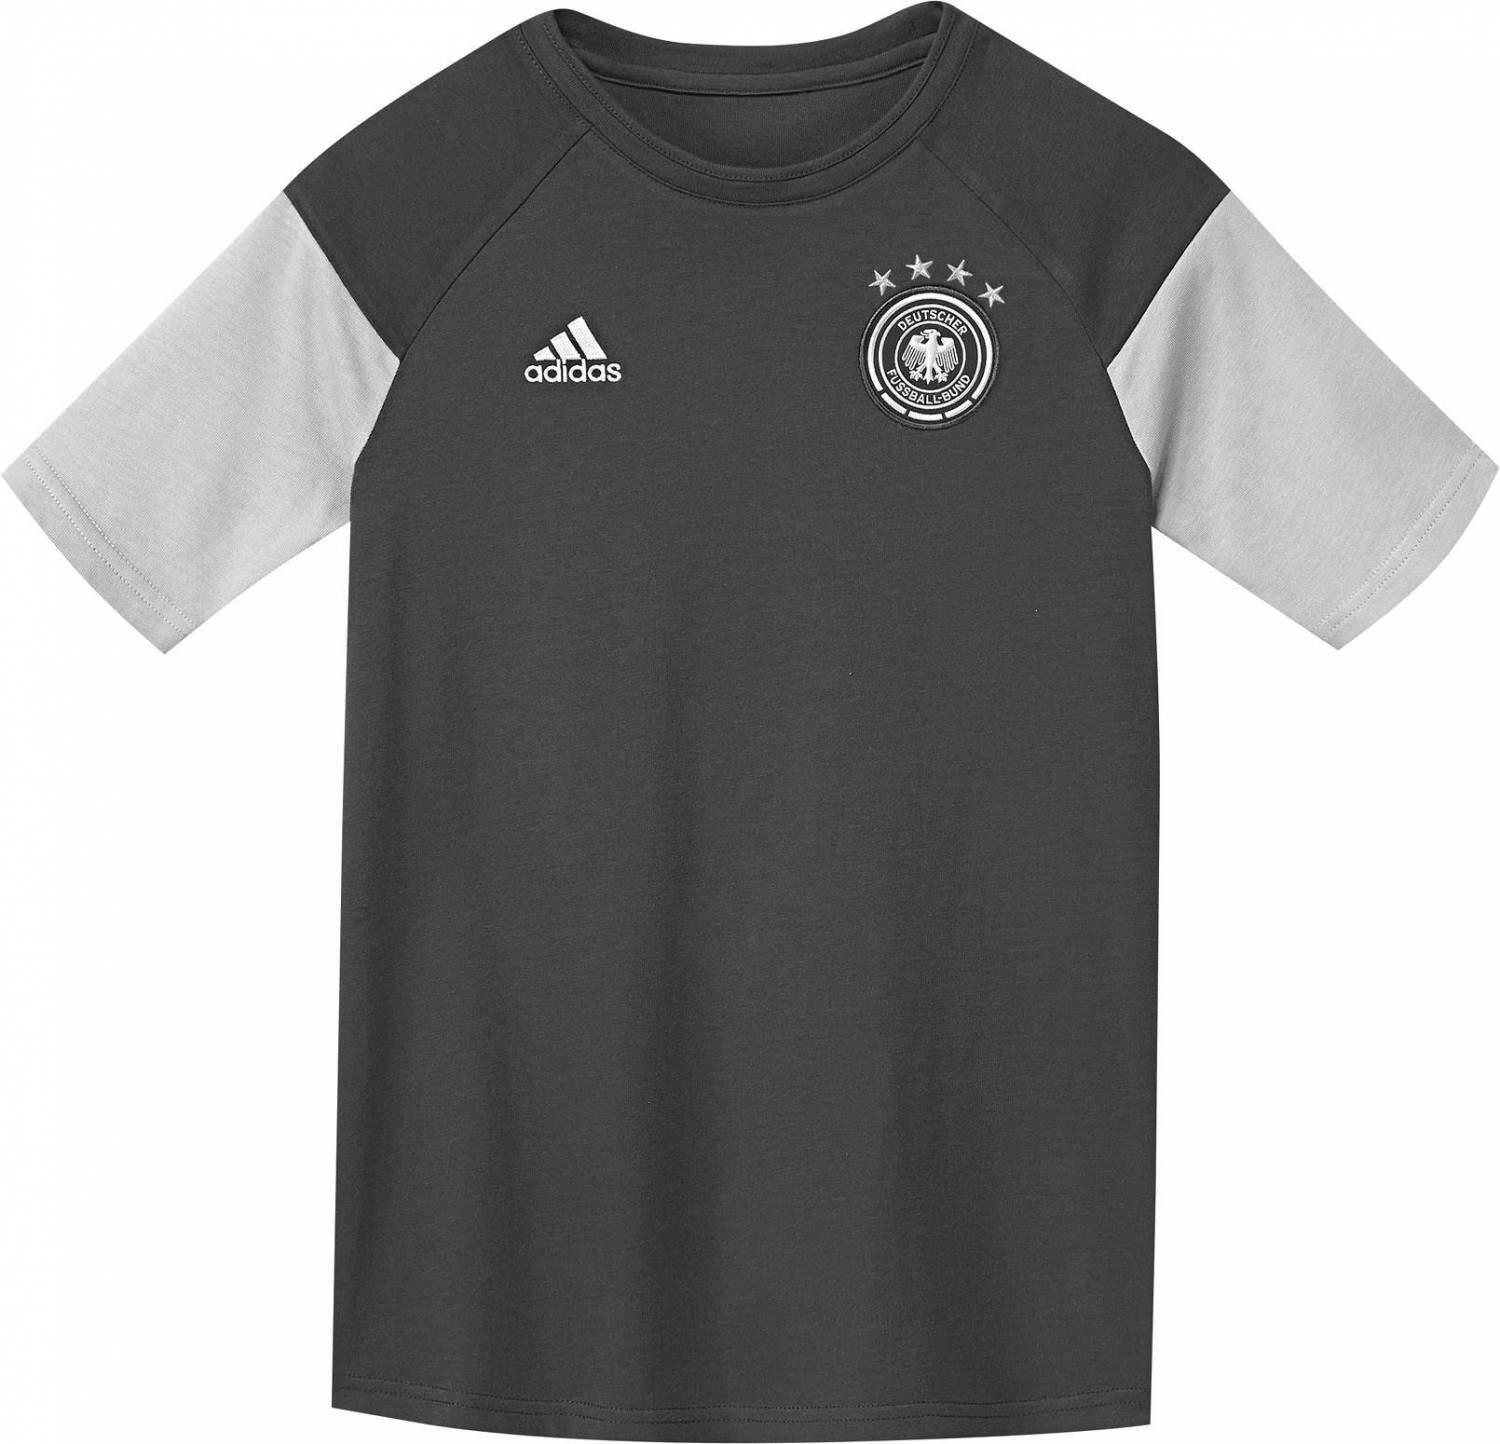 adidas DFB Trainings Tee Youth Kindertrikot